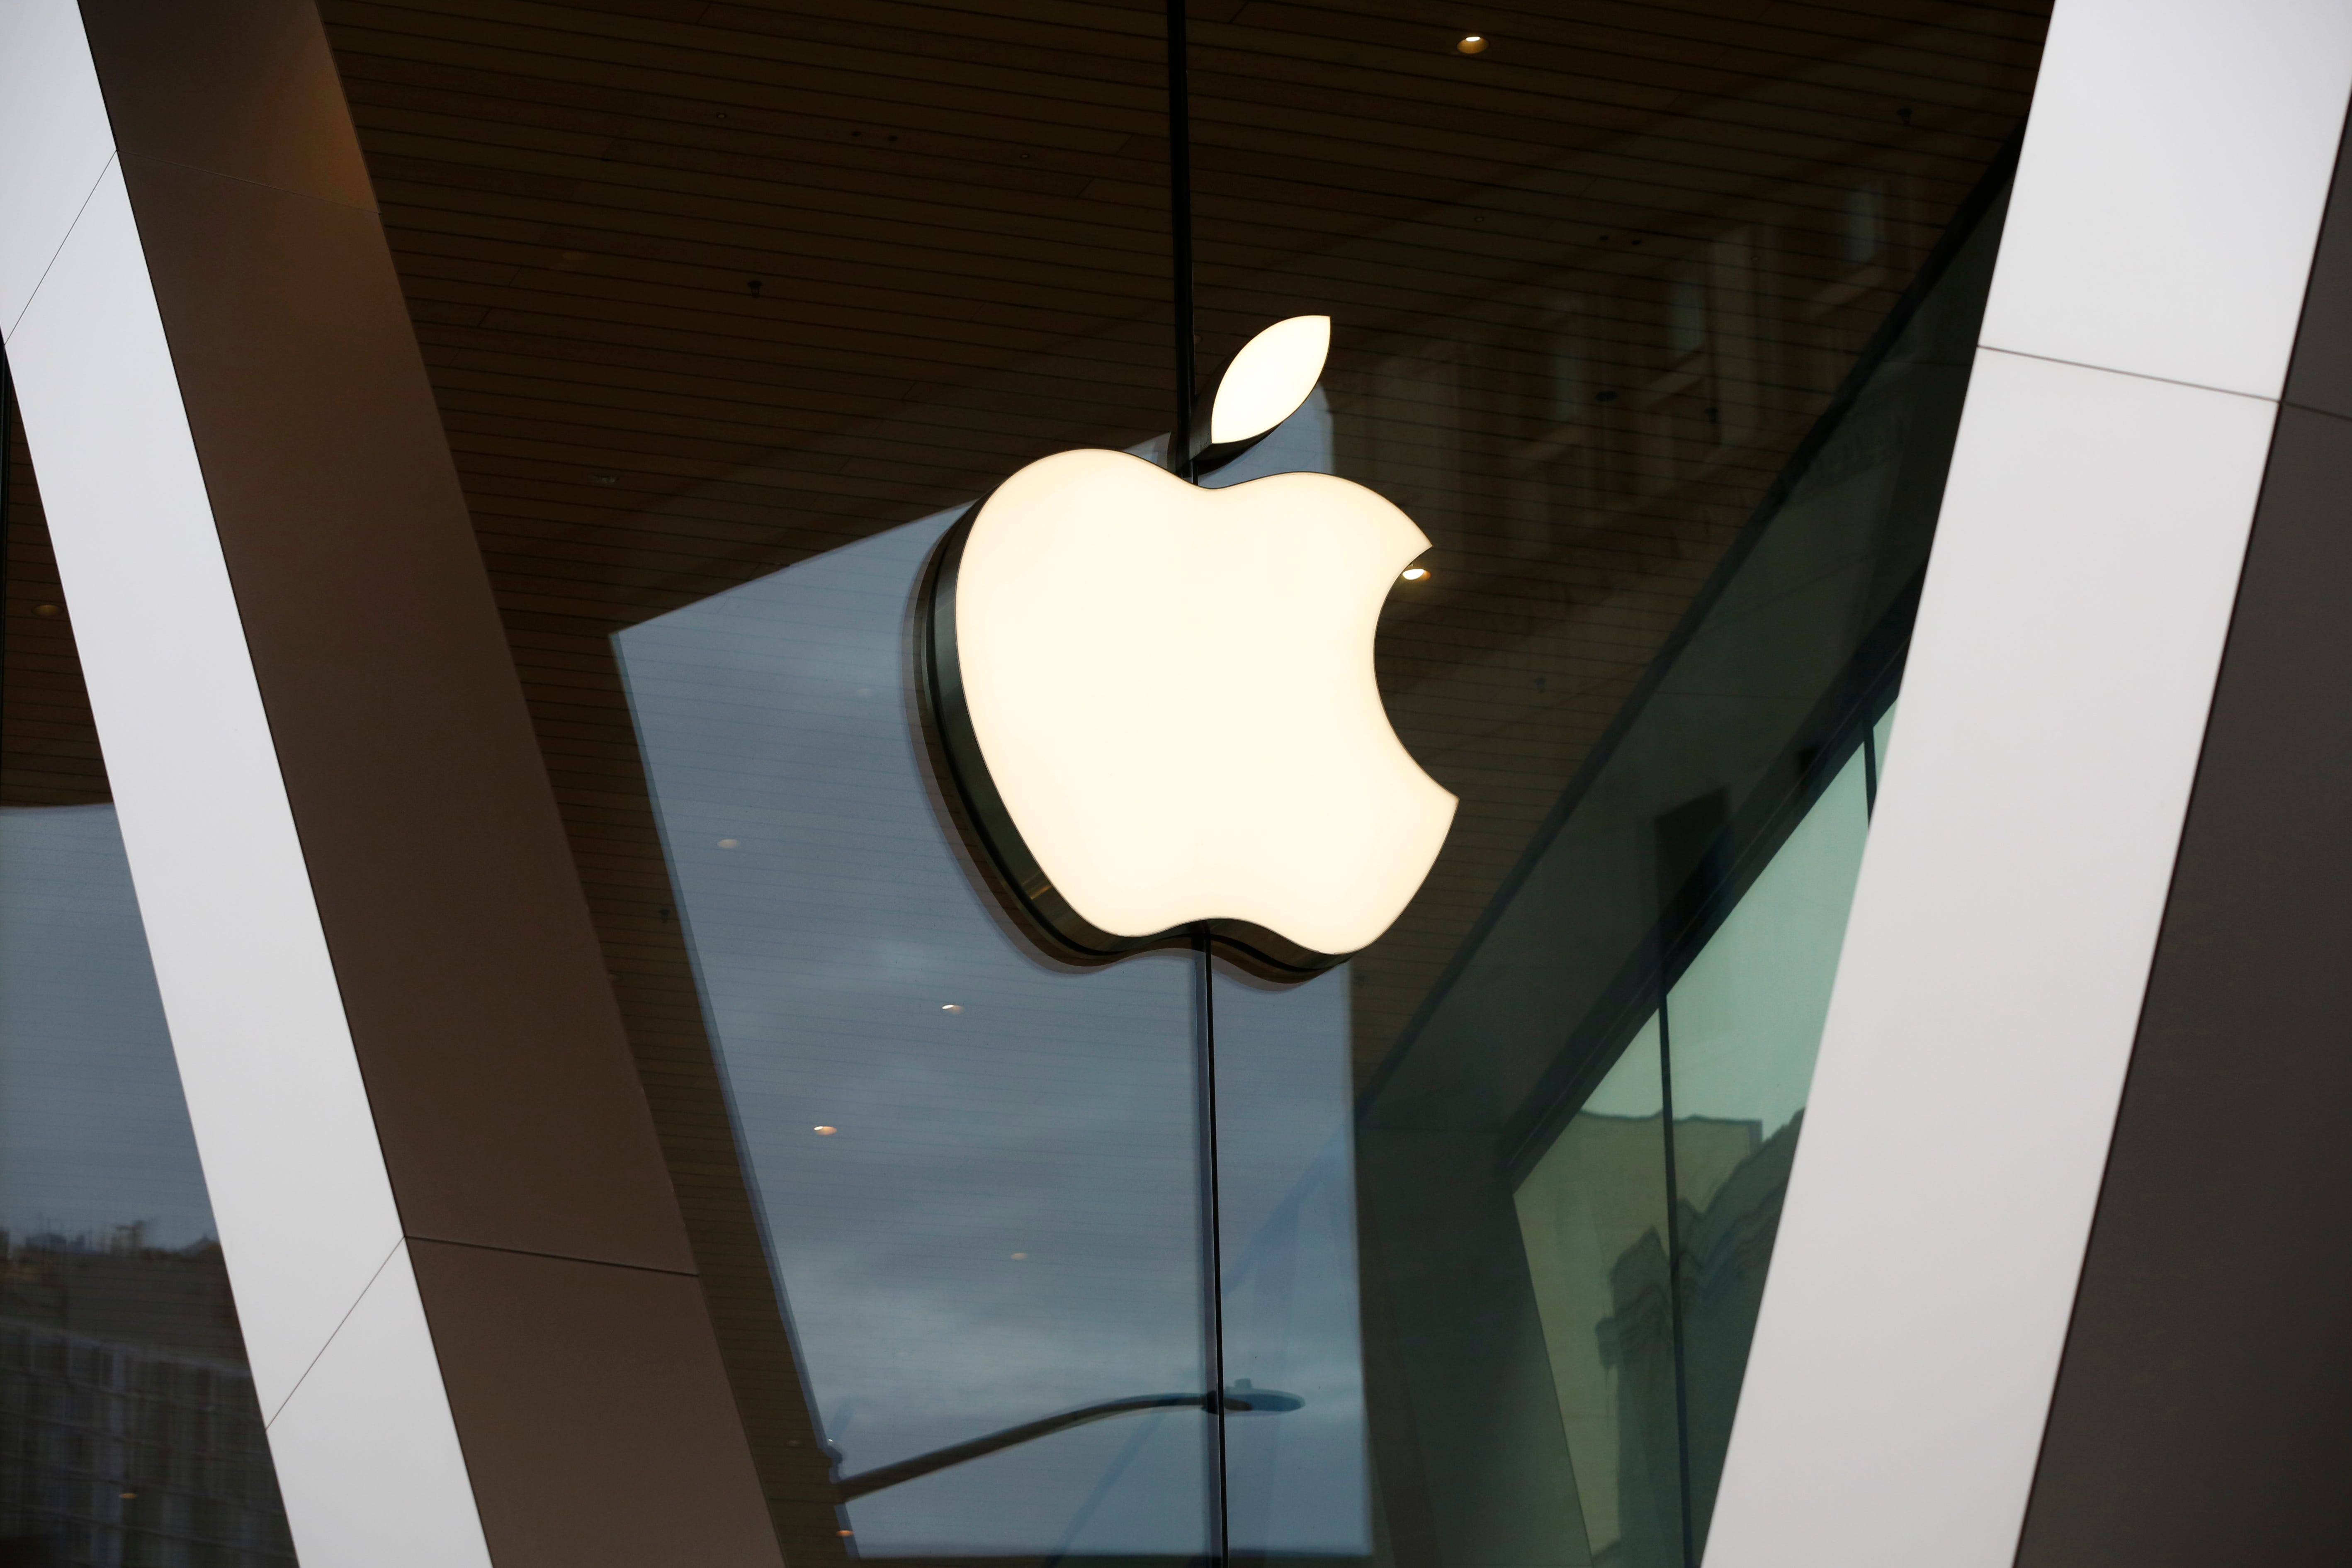 Apple reaffirms privacy stance amid Trump probe revelations 2